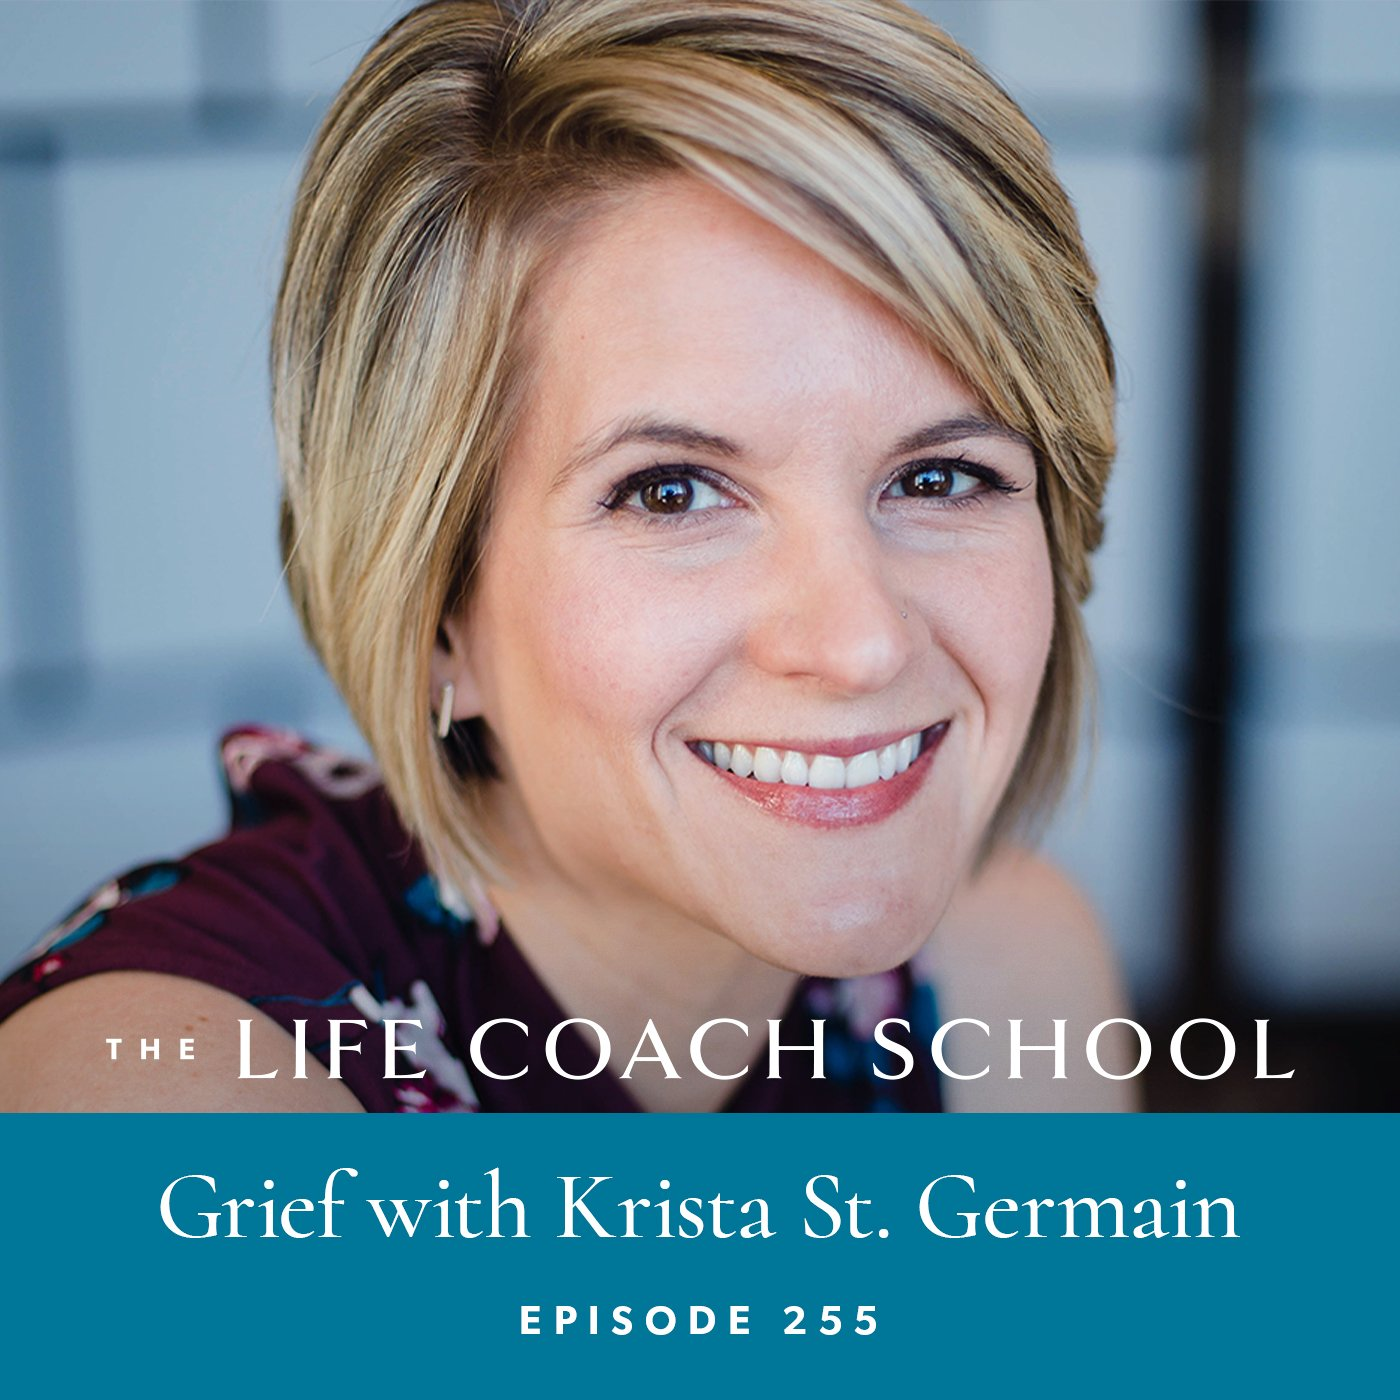 The Life Coach School Podcast with Brooke Castillo | Episode 255 | Grief with Krista St. Germain